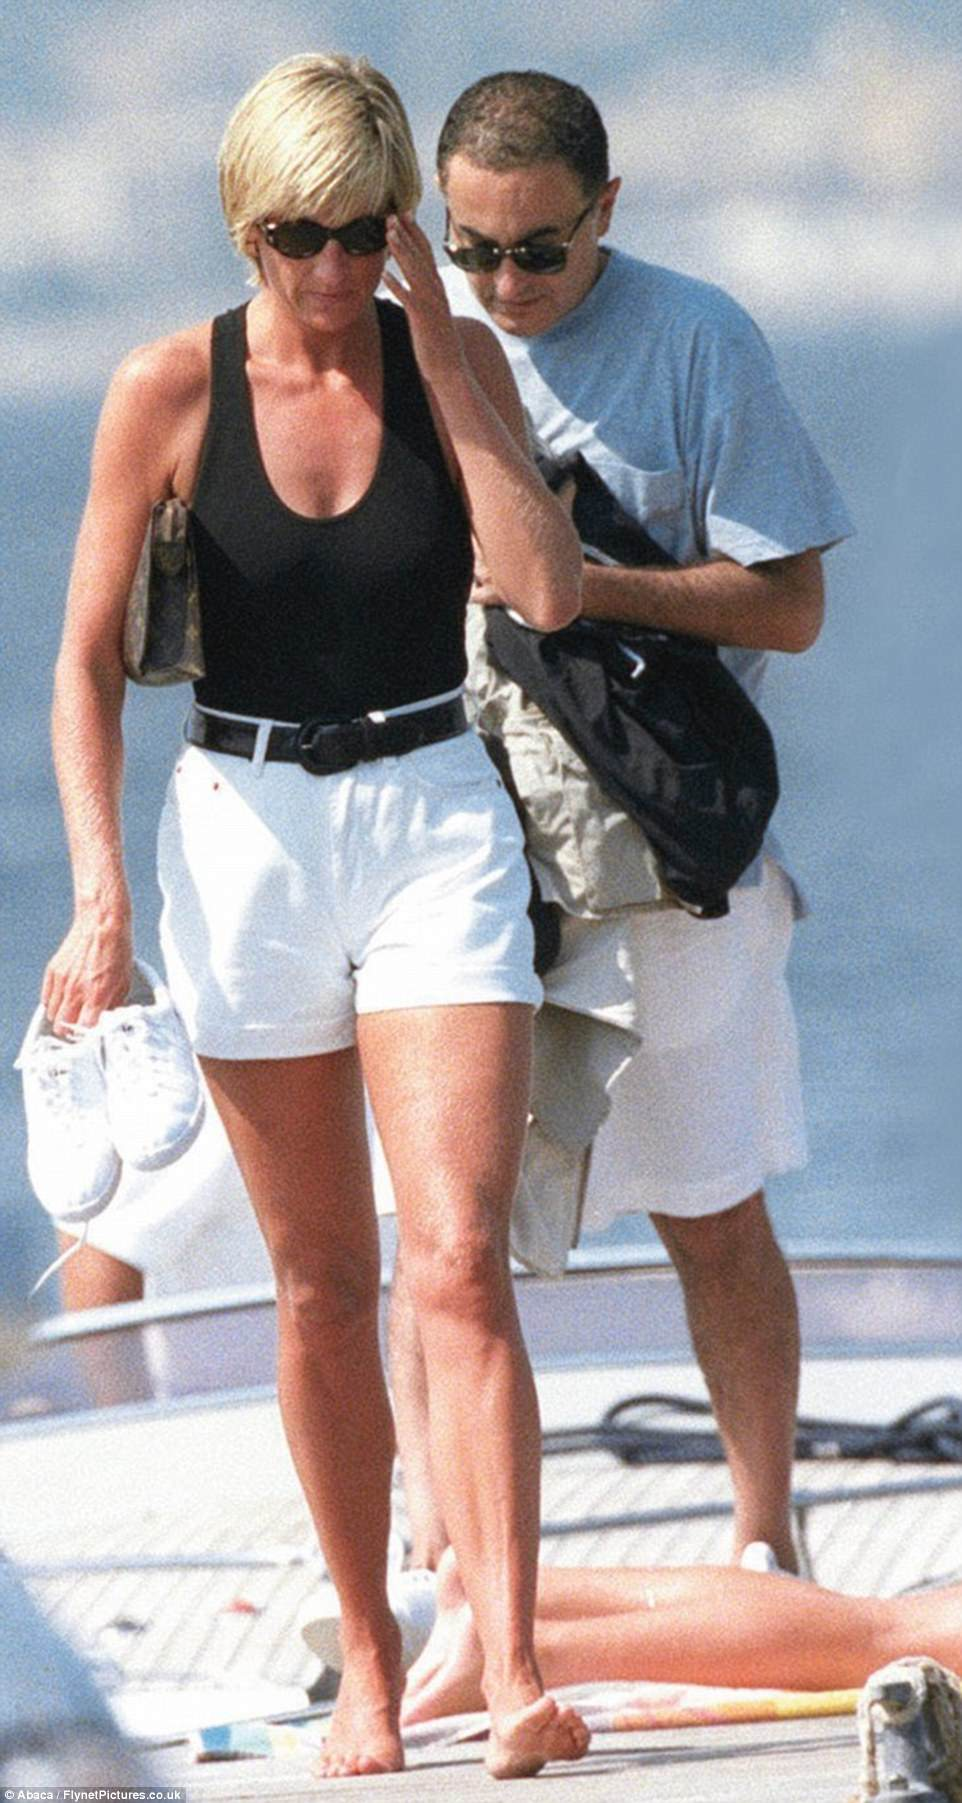 In this last picture Diana peers at pursuing paparazzi while Henri Paul right is caught wide eyed by the flashes and bodyguard Trevor Rees Jones looks anxious